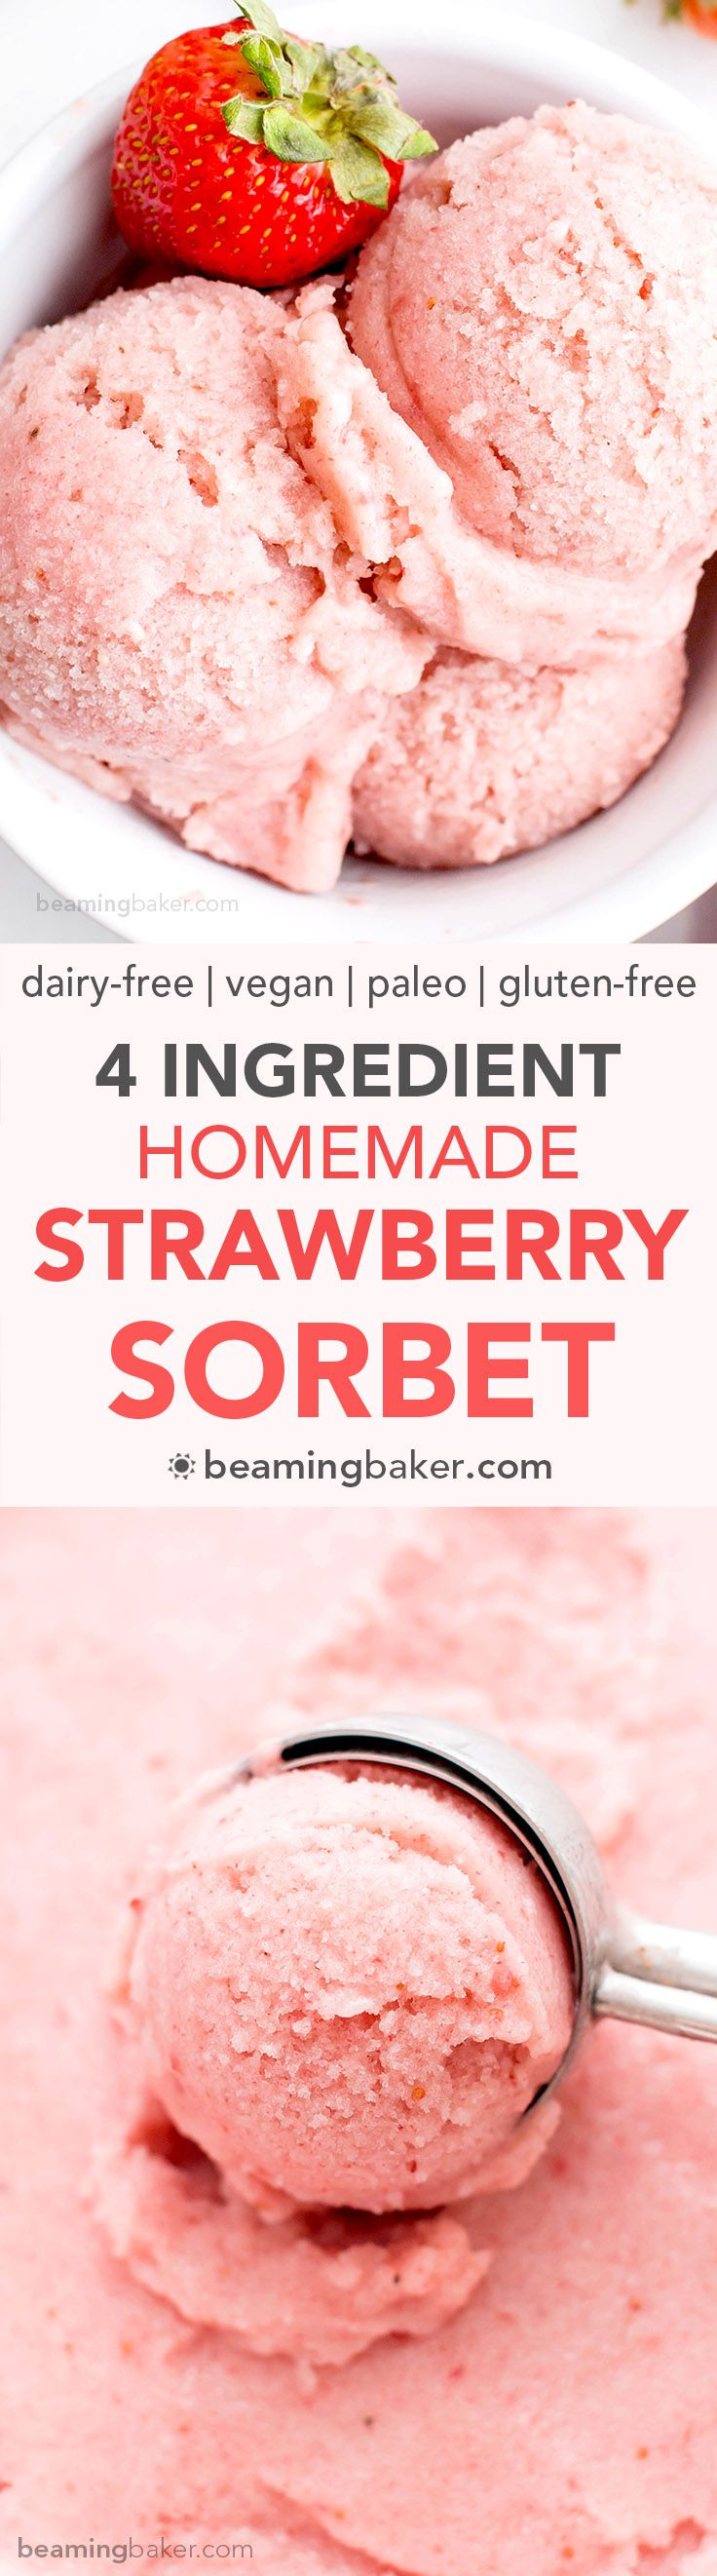 4 Ingredient Homemade Strawberry Sorbet (V+GF): an easy recipe for deliciously creamy and refreshing strawberry sorbet. #Vegan #DairyFree #Paleo #GlutenFree | BeamingBaker.com